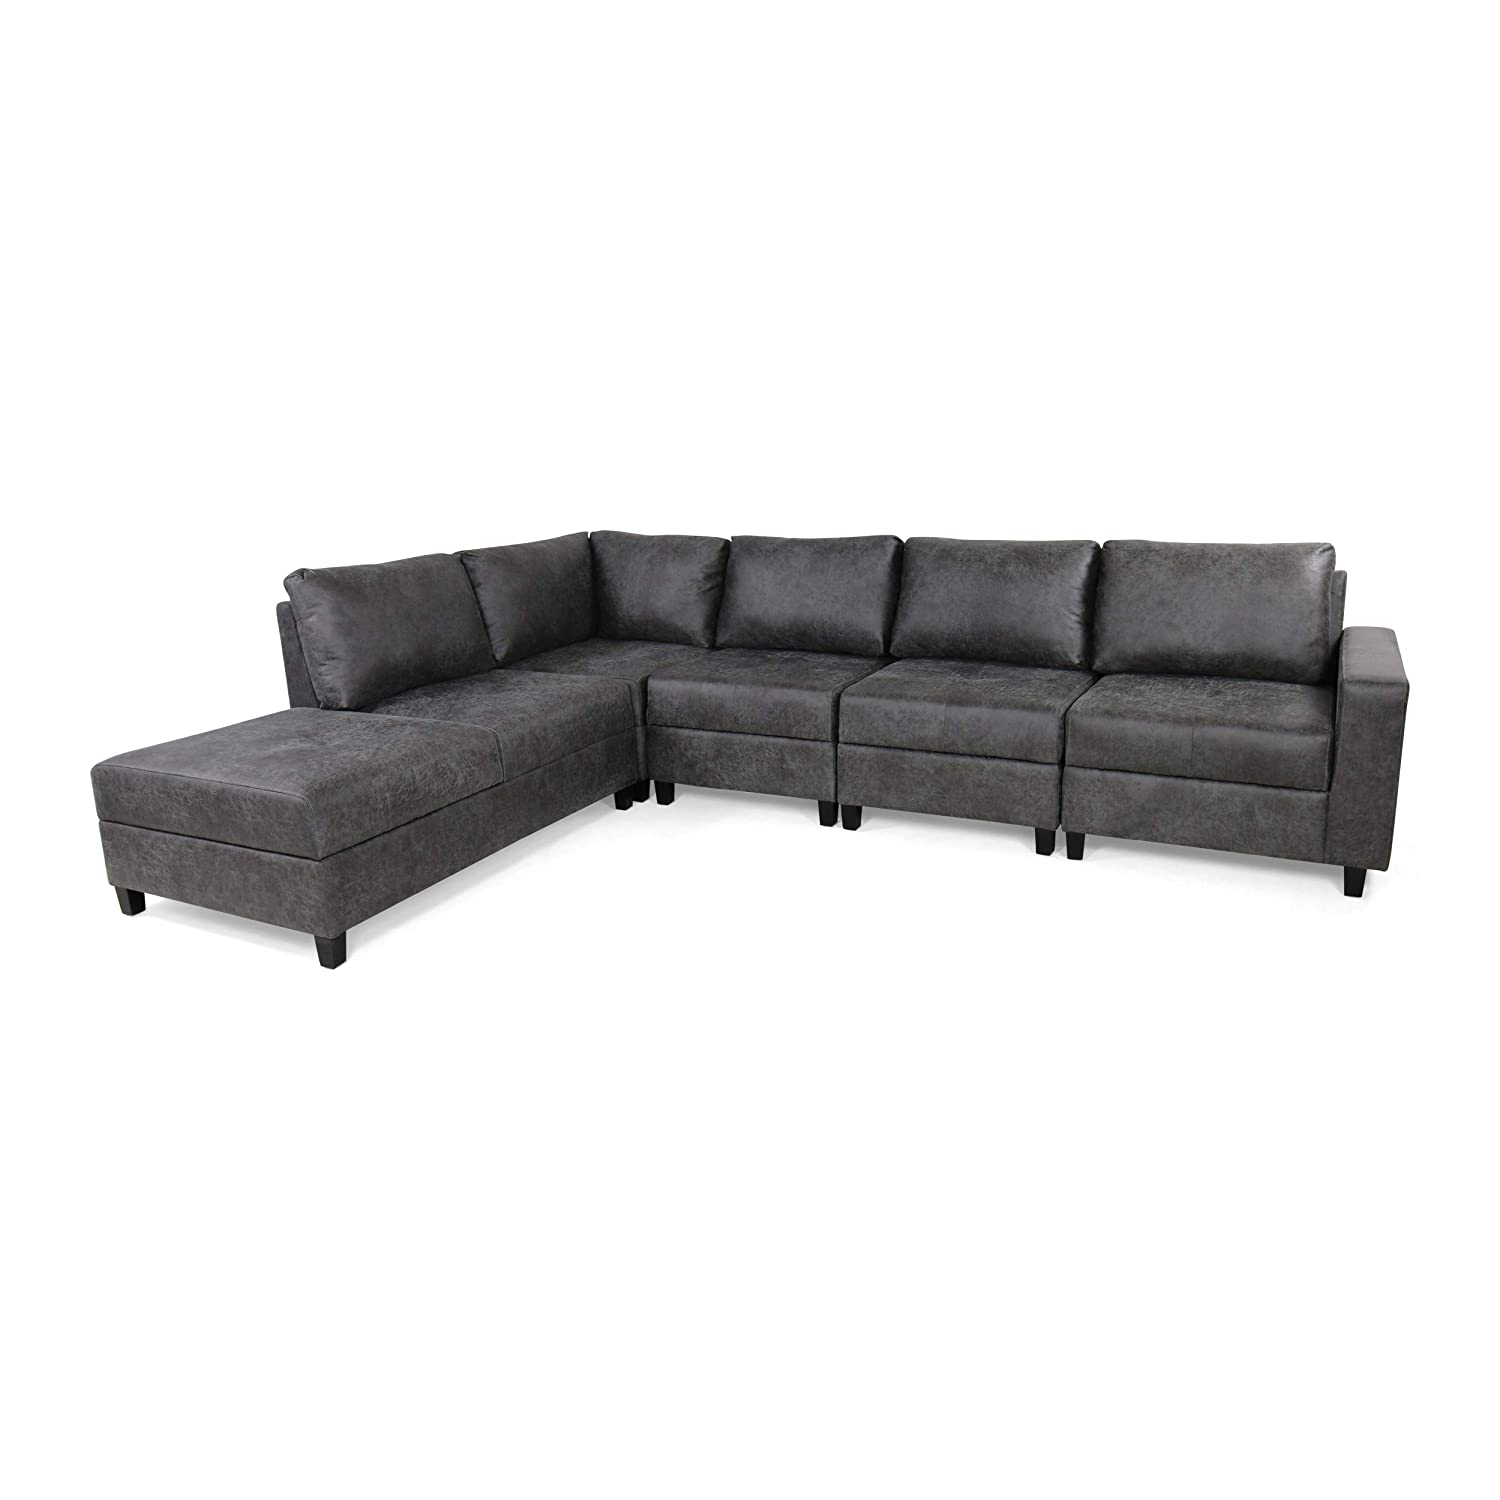 Amazon Com Kama Chaise Sectional Sofa Set 5 Seater Hidden Storage